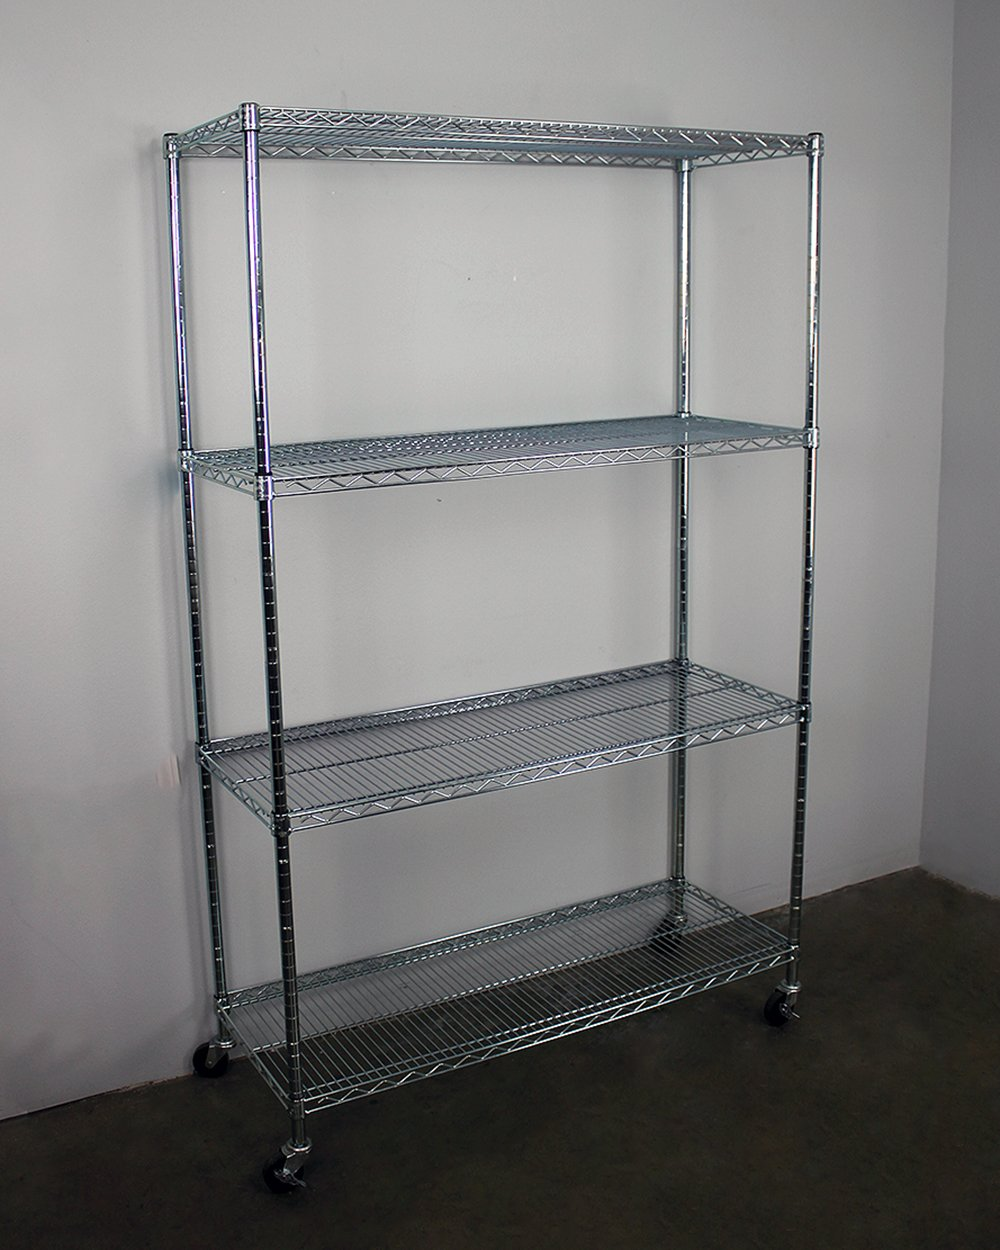 Amazon.com: SafeRacks NSF 4-Tier Wire Shelving Rack with Wheels - 18 ...